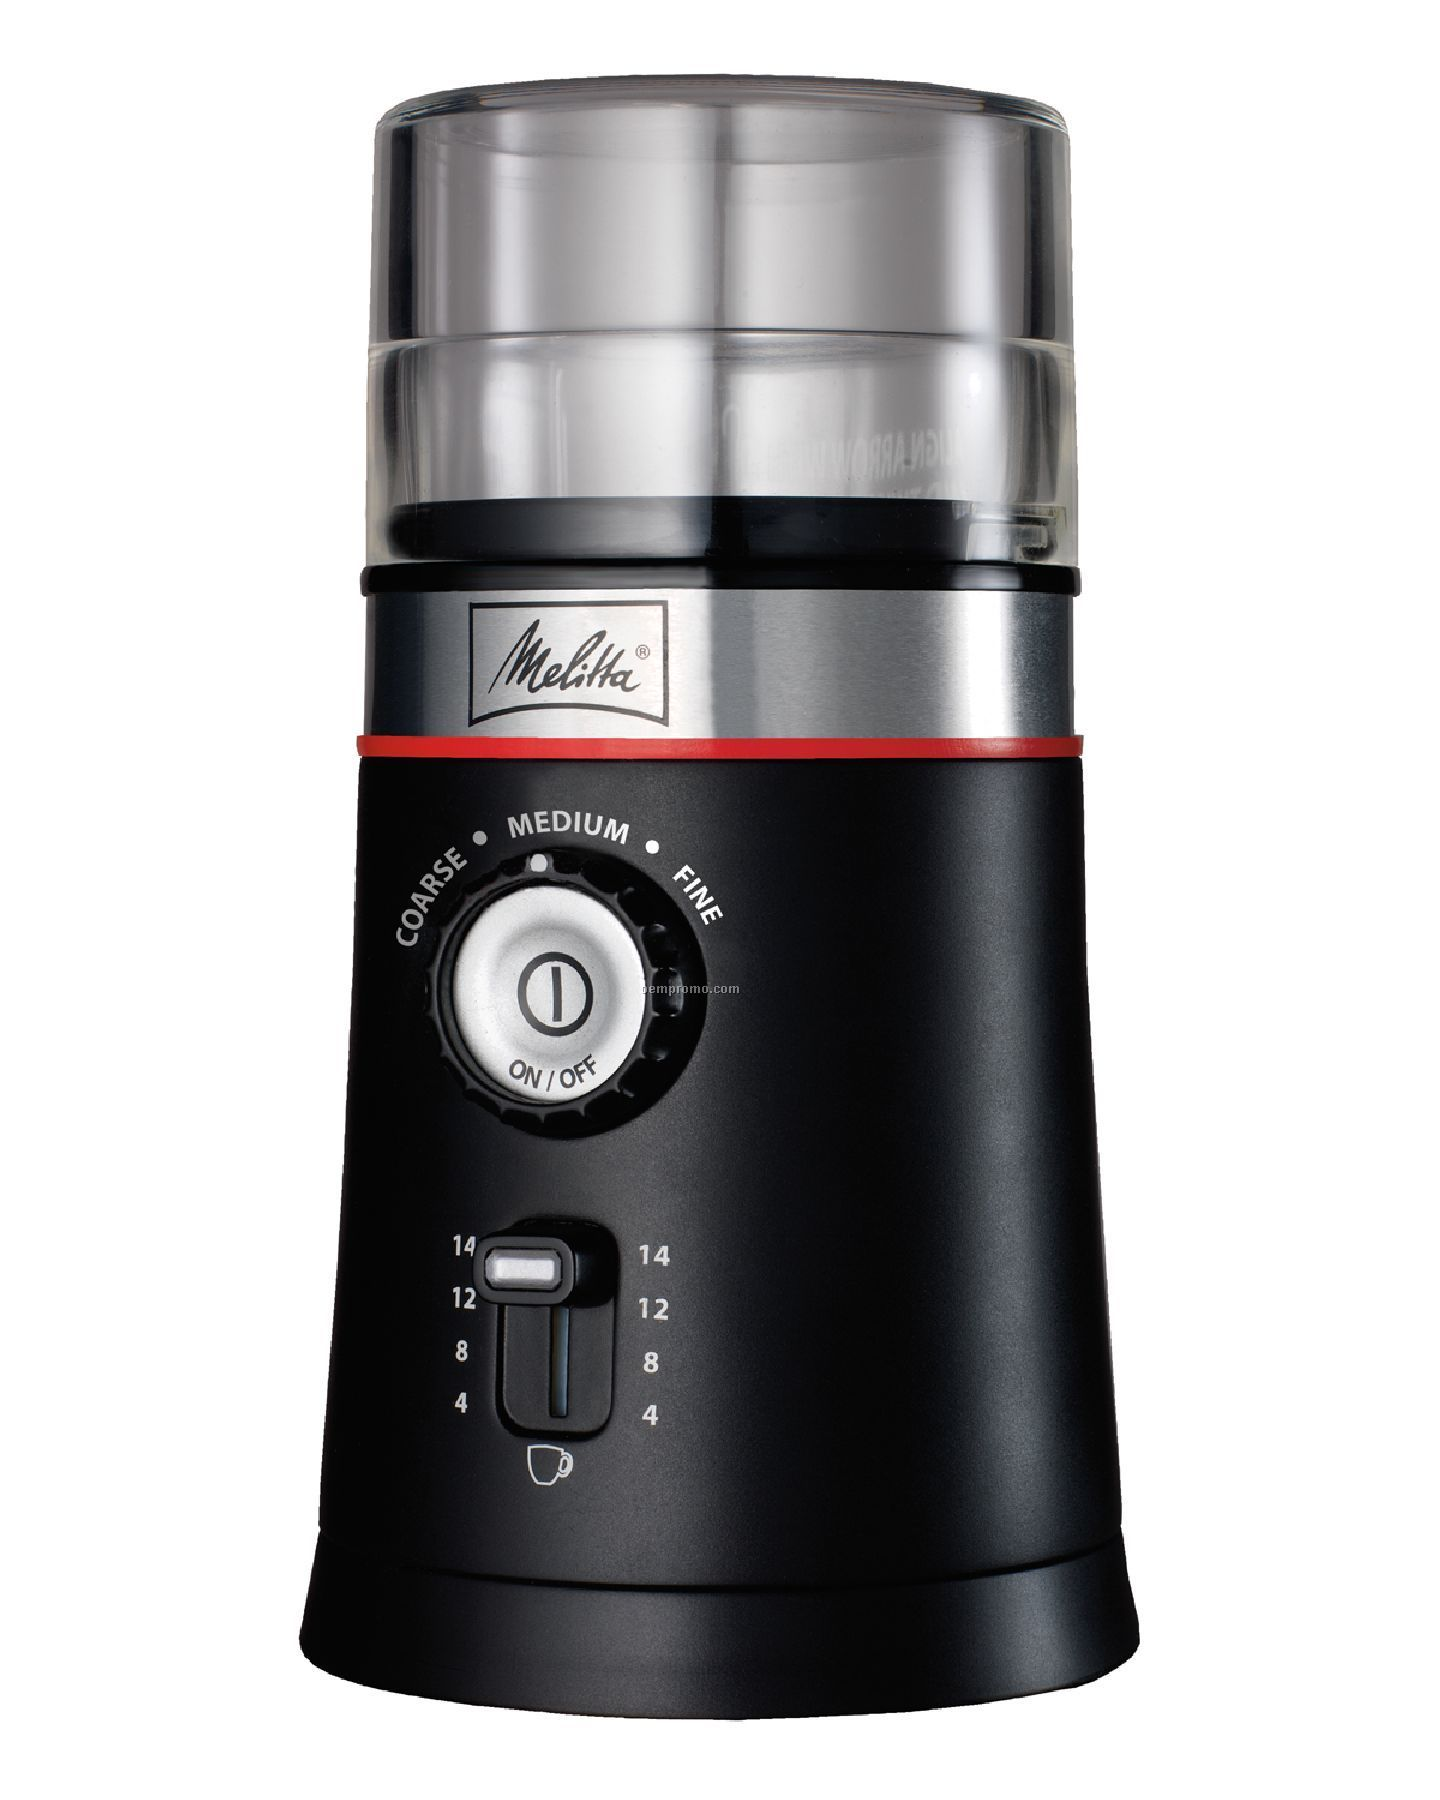 Melitta - Coffee Mills - Melitta Coffee Grinder